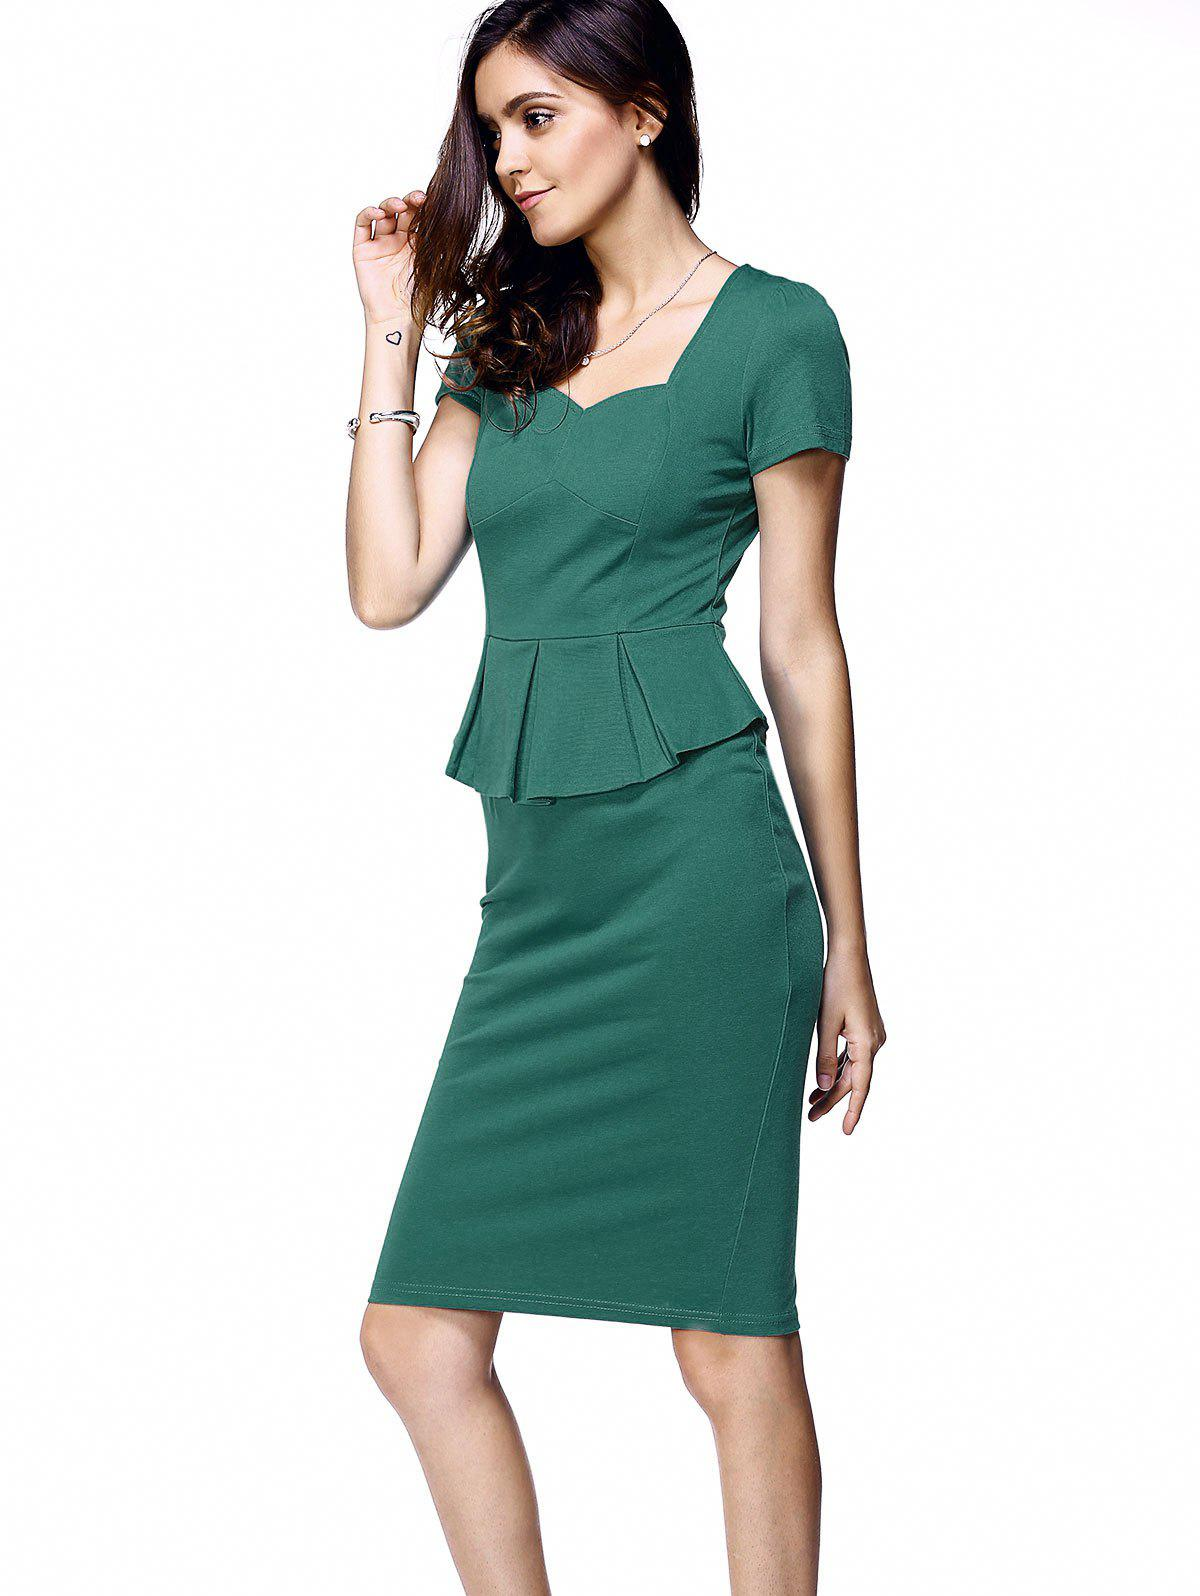 Elegant Short Sleeve Flounce Waist Women's Bodycon Dress - LAKE GREEN S